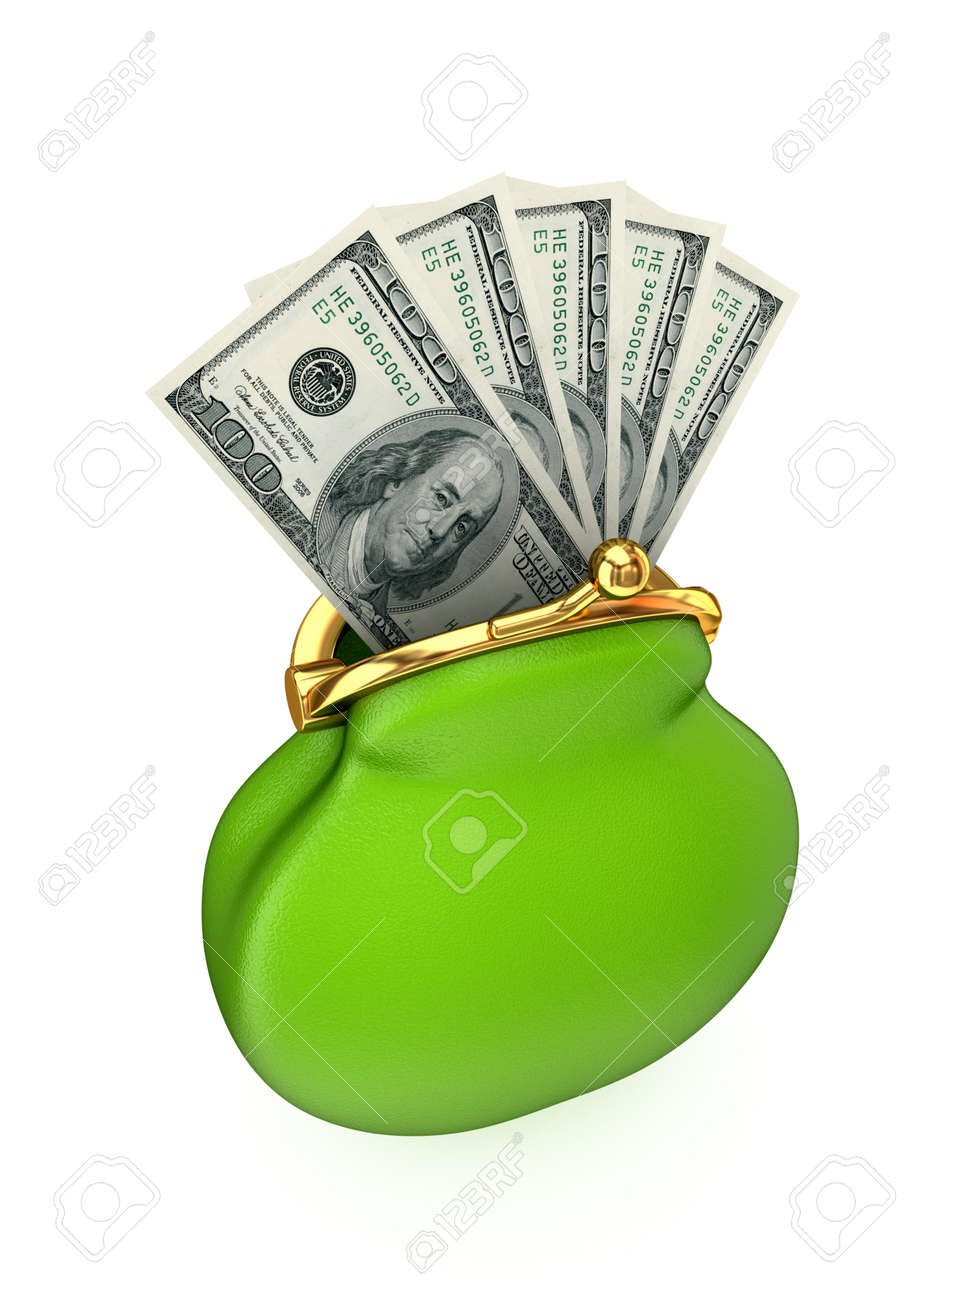 Dollar pack in a green purse.Isolated on white background.3d rendered. Stock Photo - 12172169